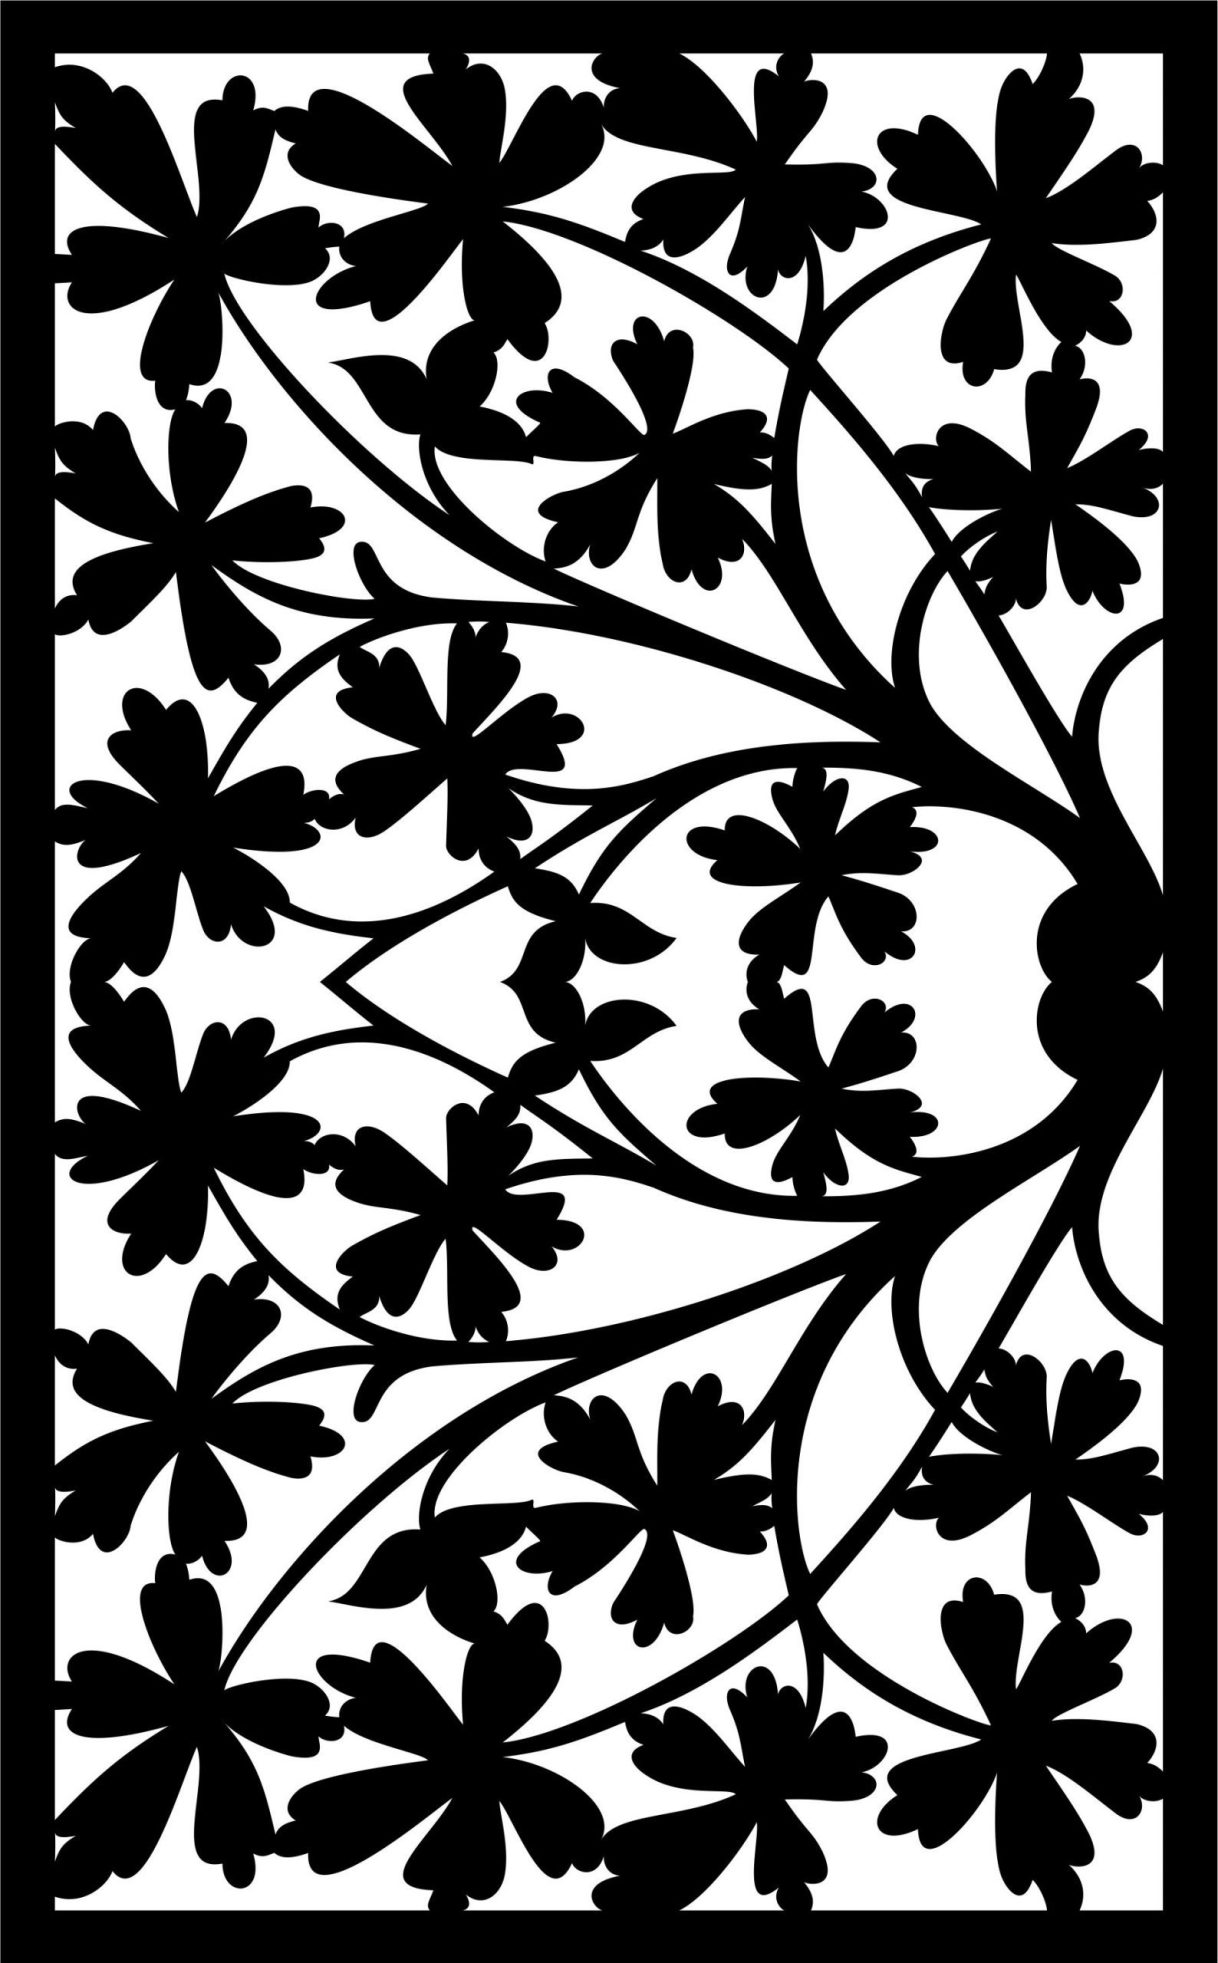 Decorative Screen Patterns For Laser Cutting 40 Free DXF File